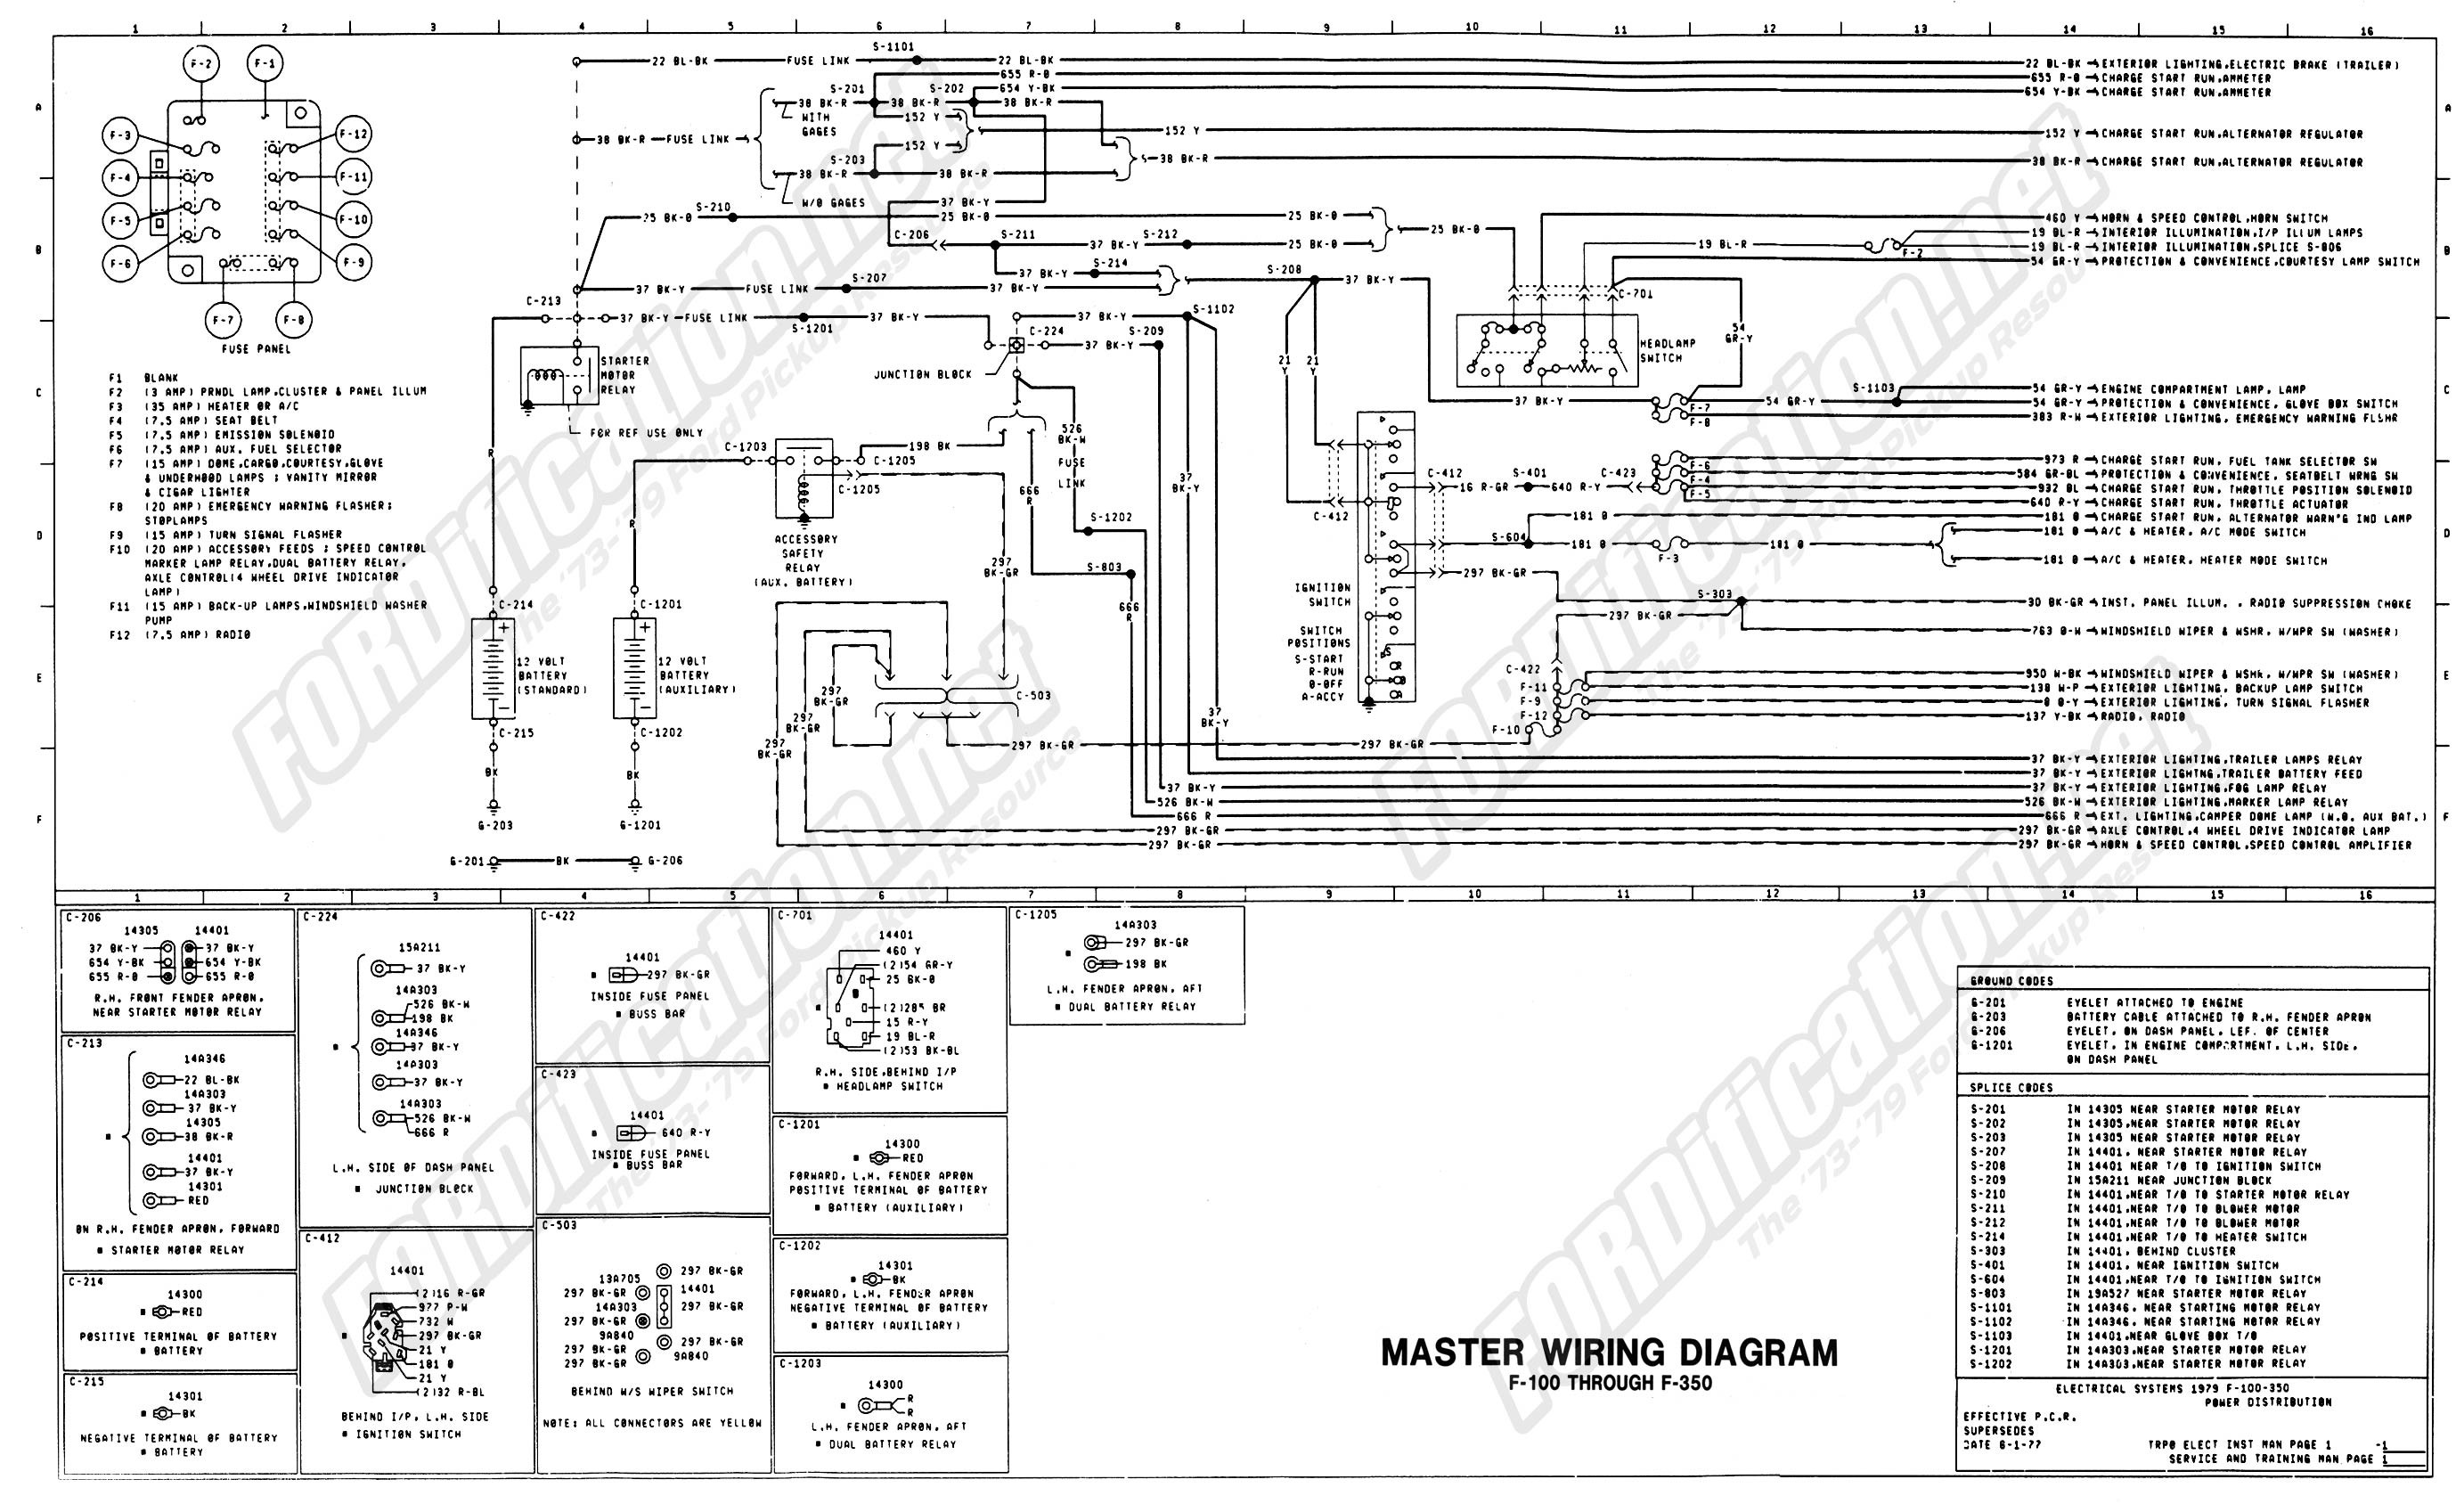 1995 ford F150 Parts Diagram 1997 ford F 150 Cruise Control Wiring Diagram Trusted Wiring Of 1995 ford F150 Parts Diagram 2006 ford F 150 Transmissions Parts Diagram Data Wiring Diagrams •